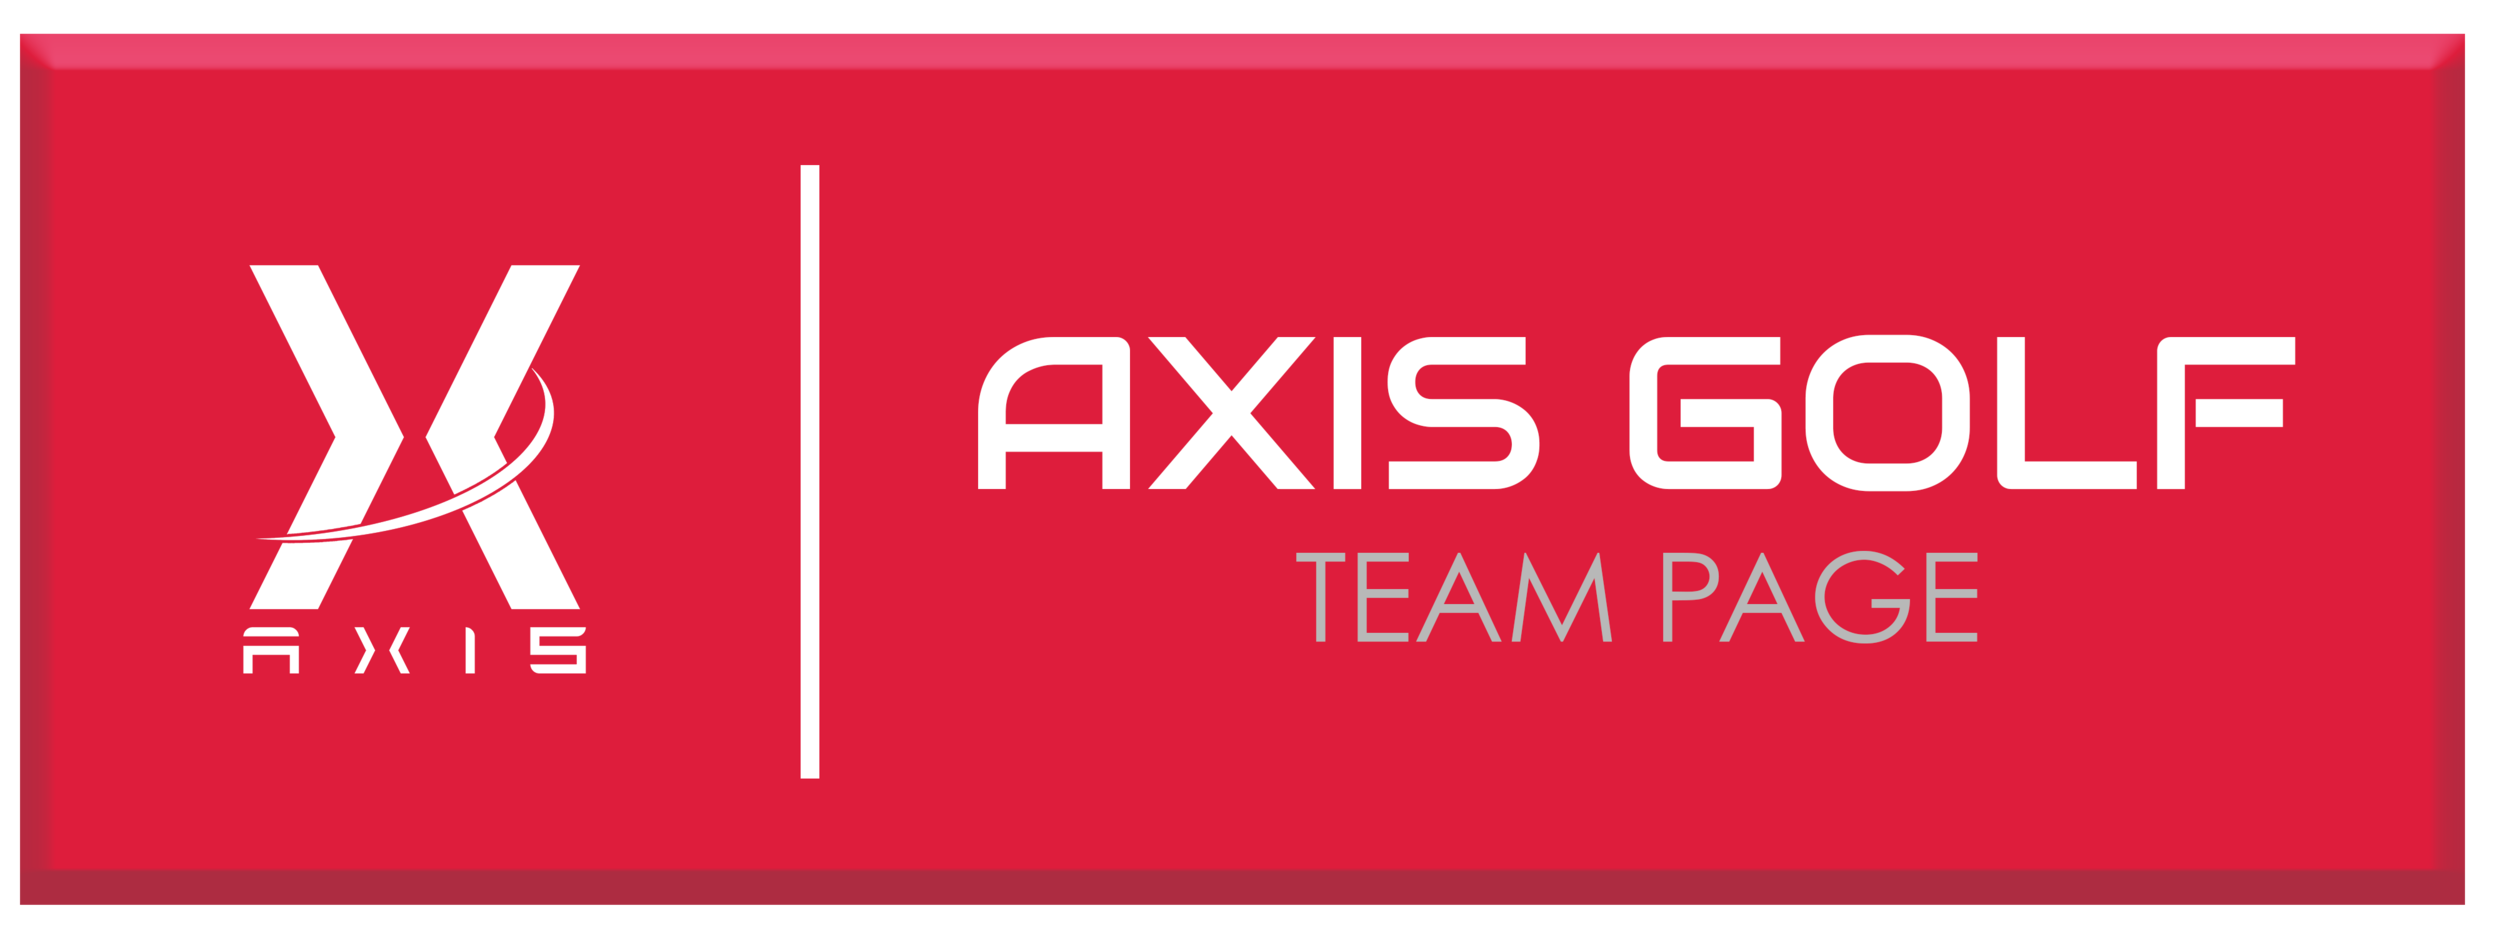 AXIS GOLF TEAM PAGE.png